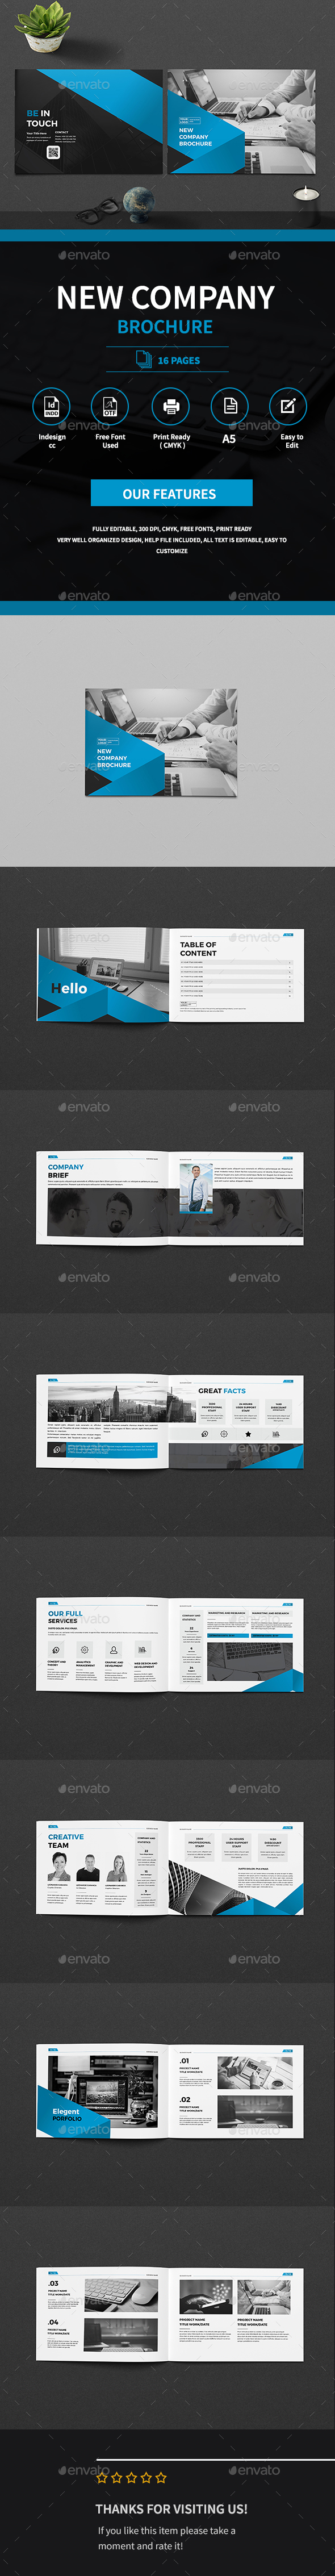 Graphicriver A5 Business Company Brochure 19275574 torrent